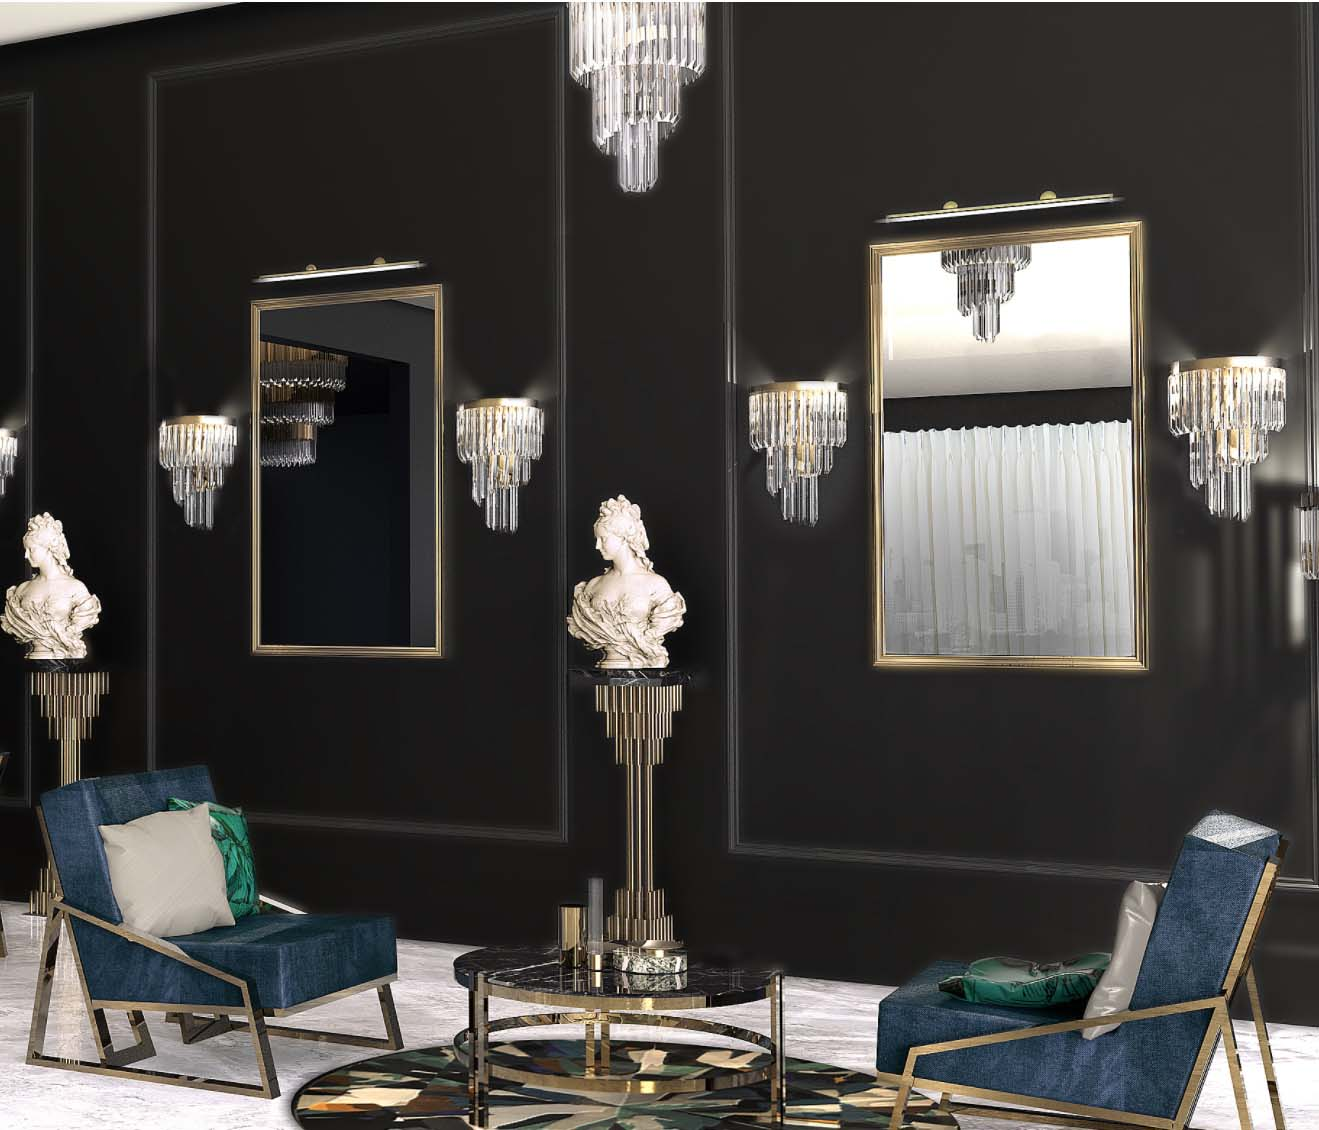 Steve ward from astounding interiors is an accomplished professional interior designer he has designed for celebrities vips the social elite and those who